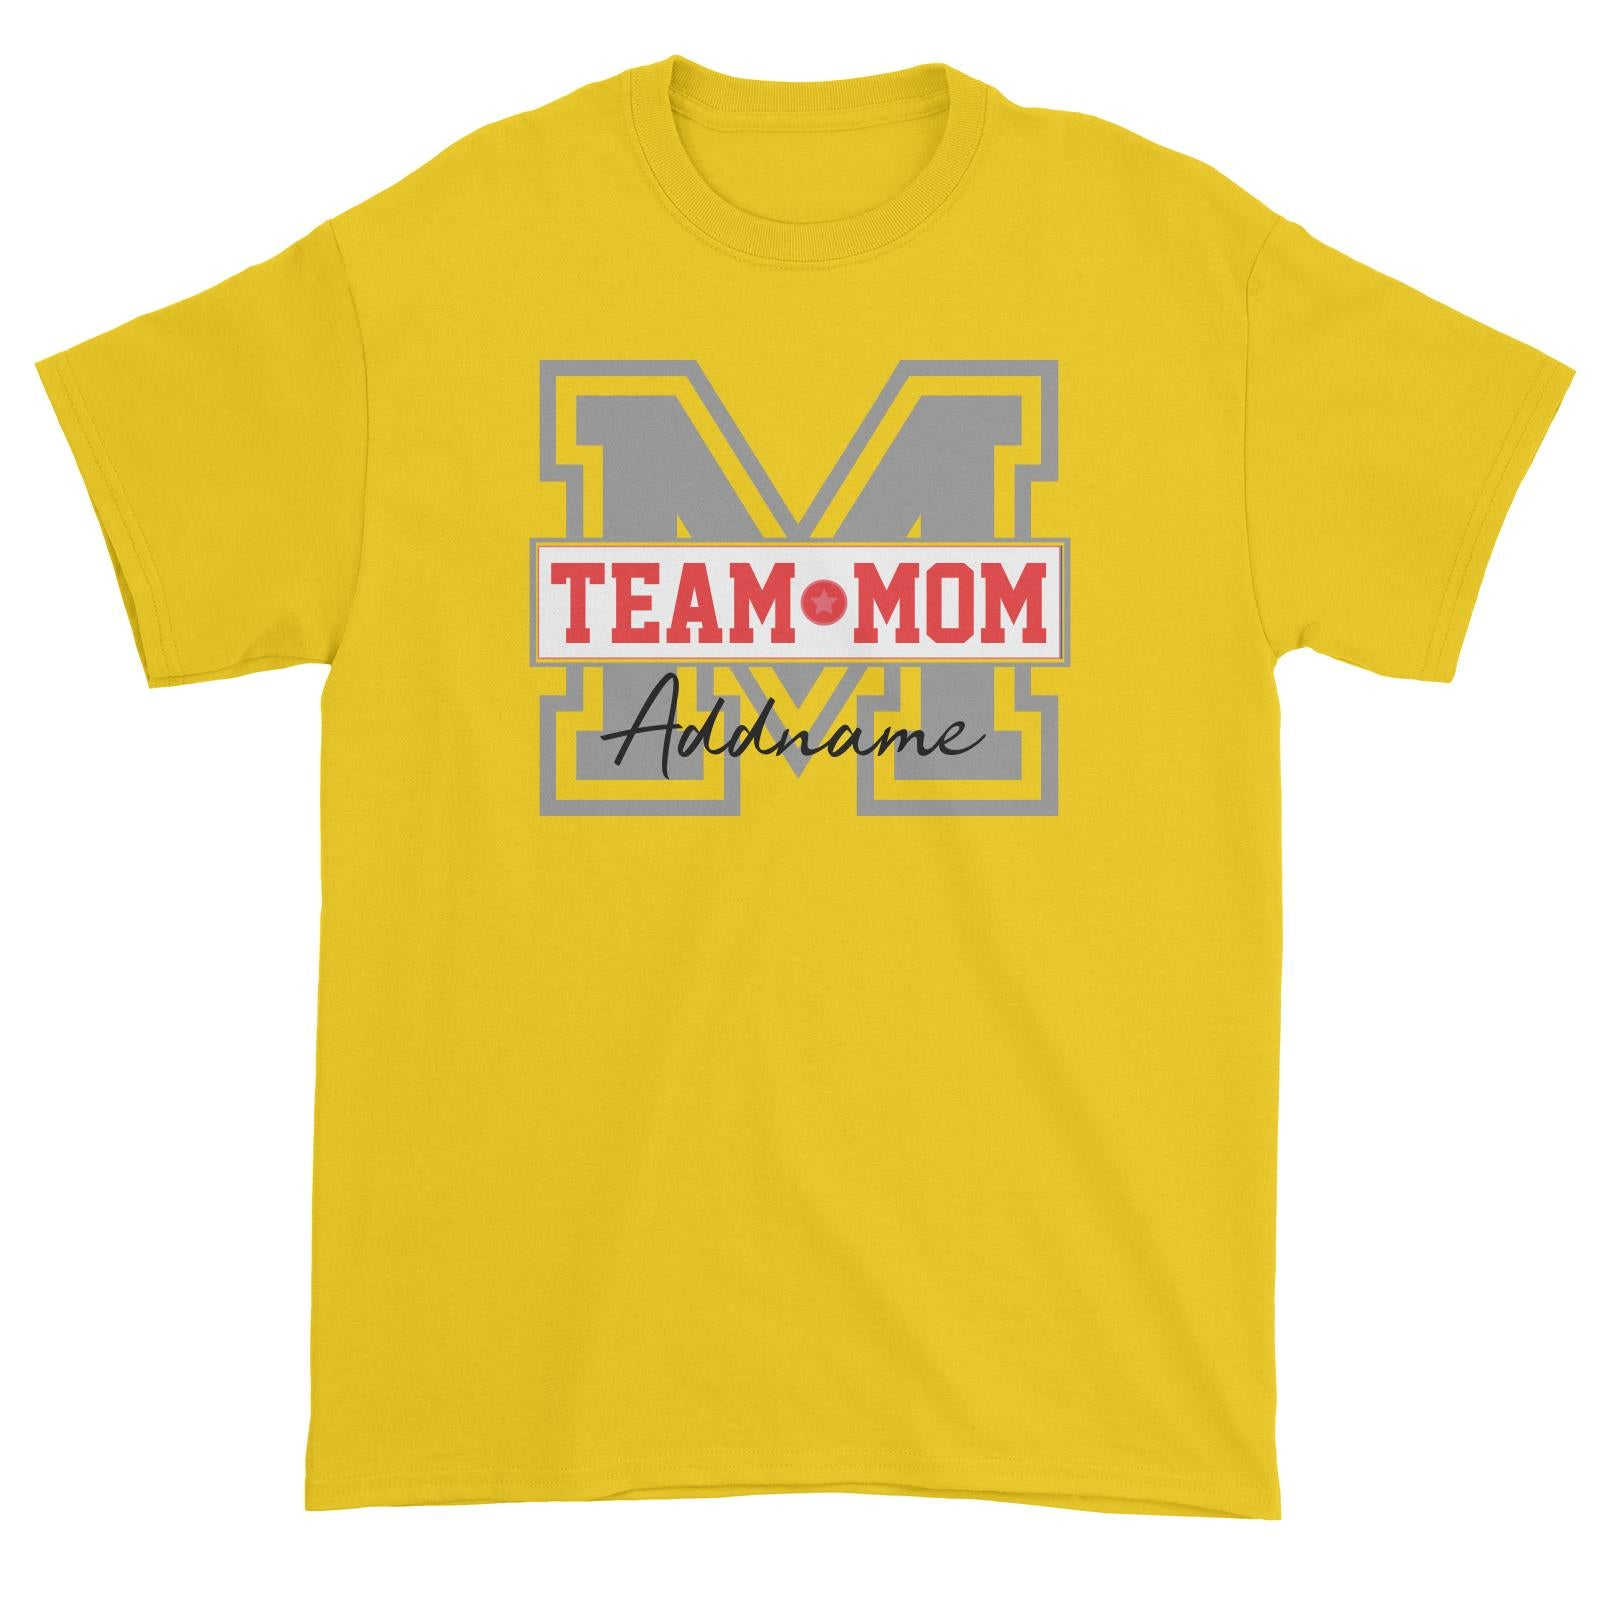 Team Mom Addname Unisex T-Shirt